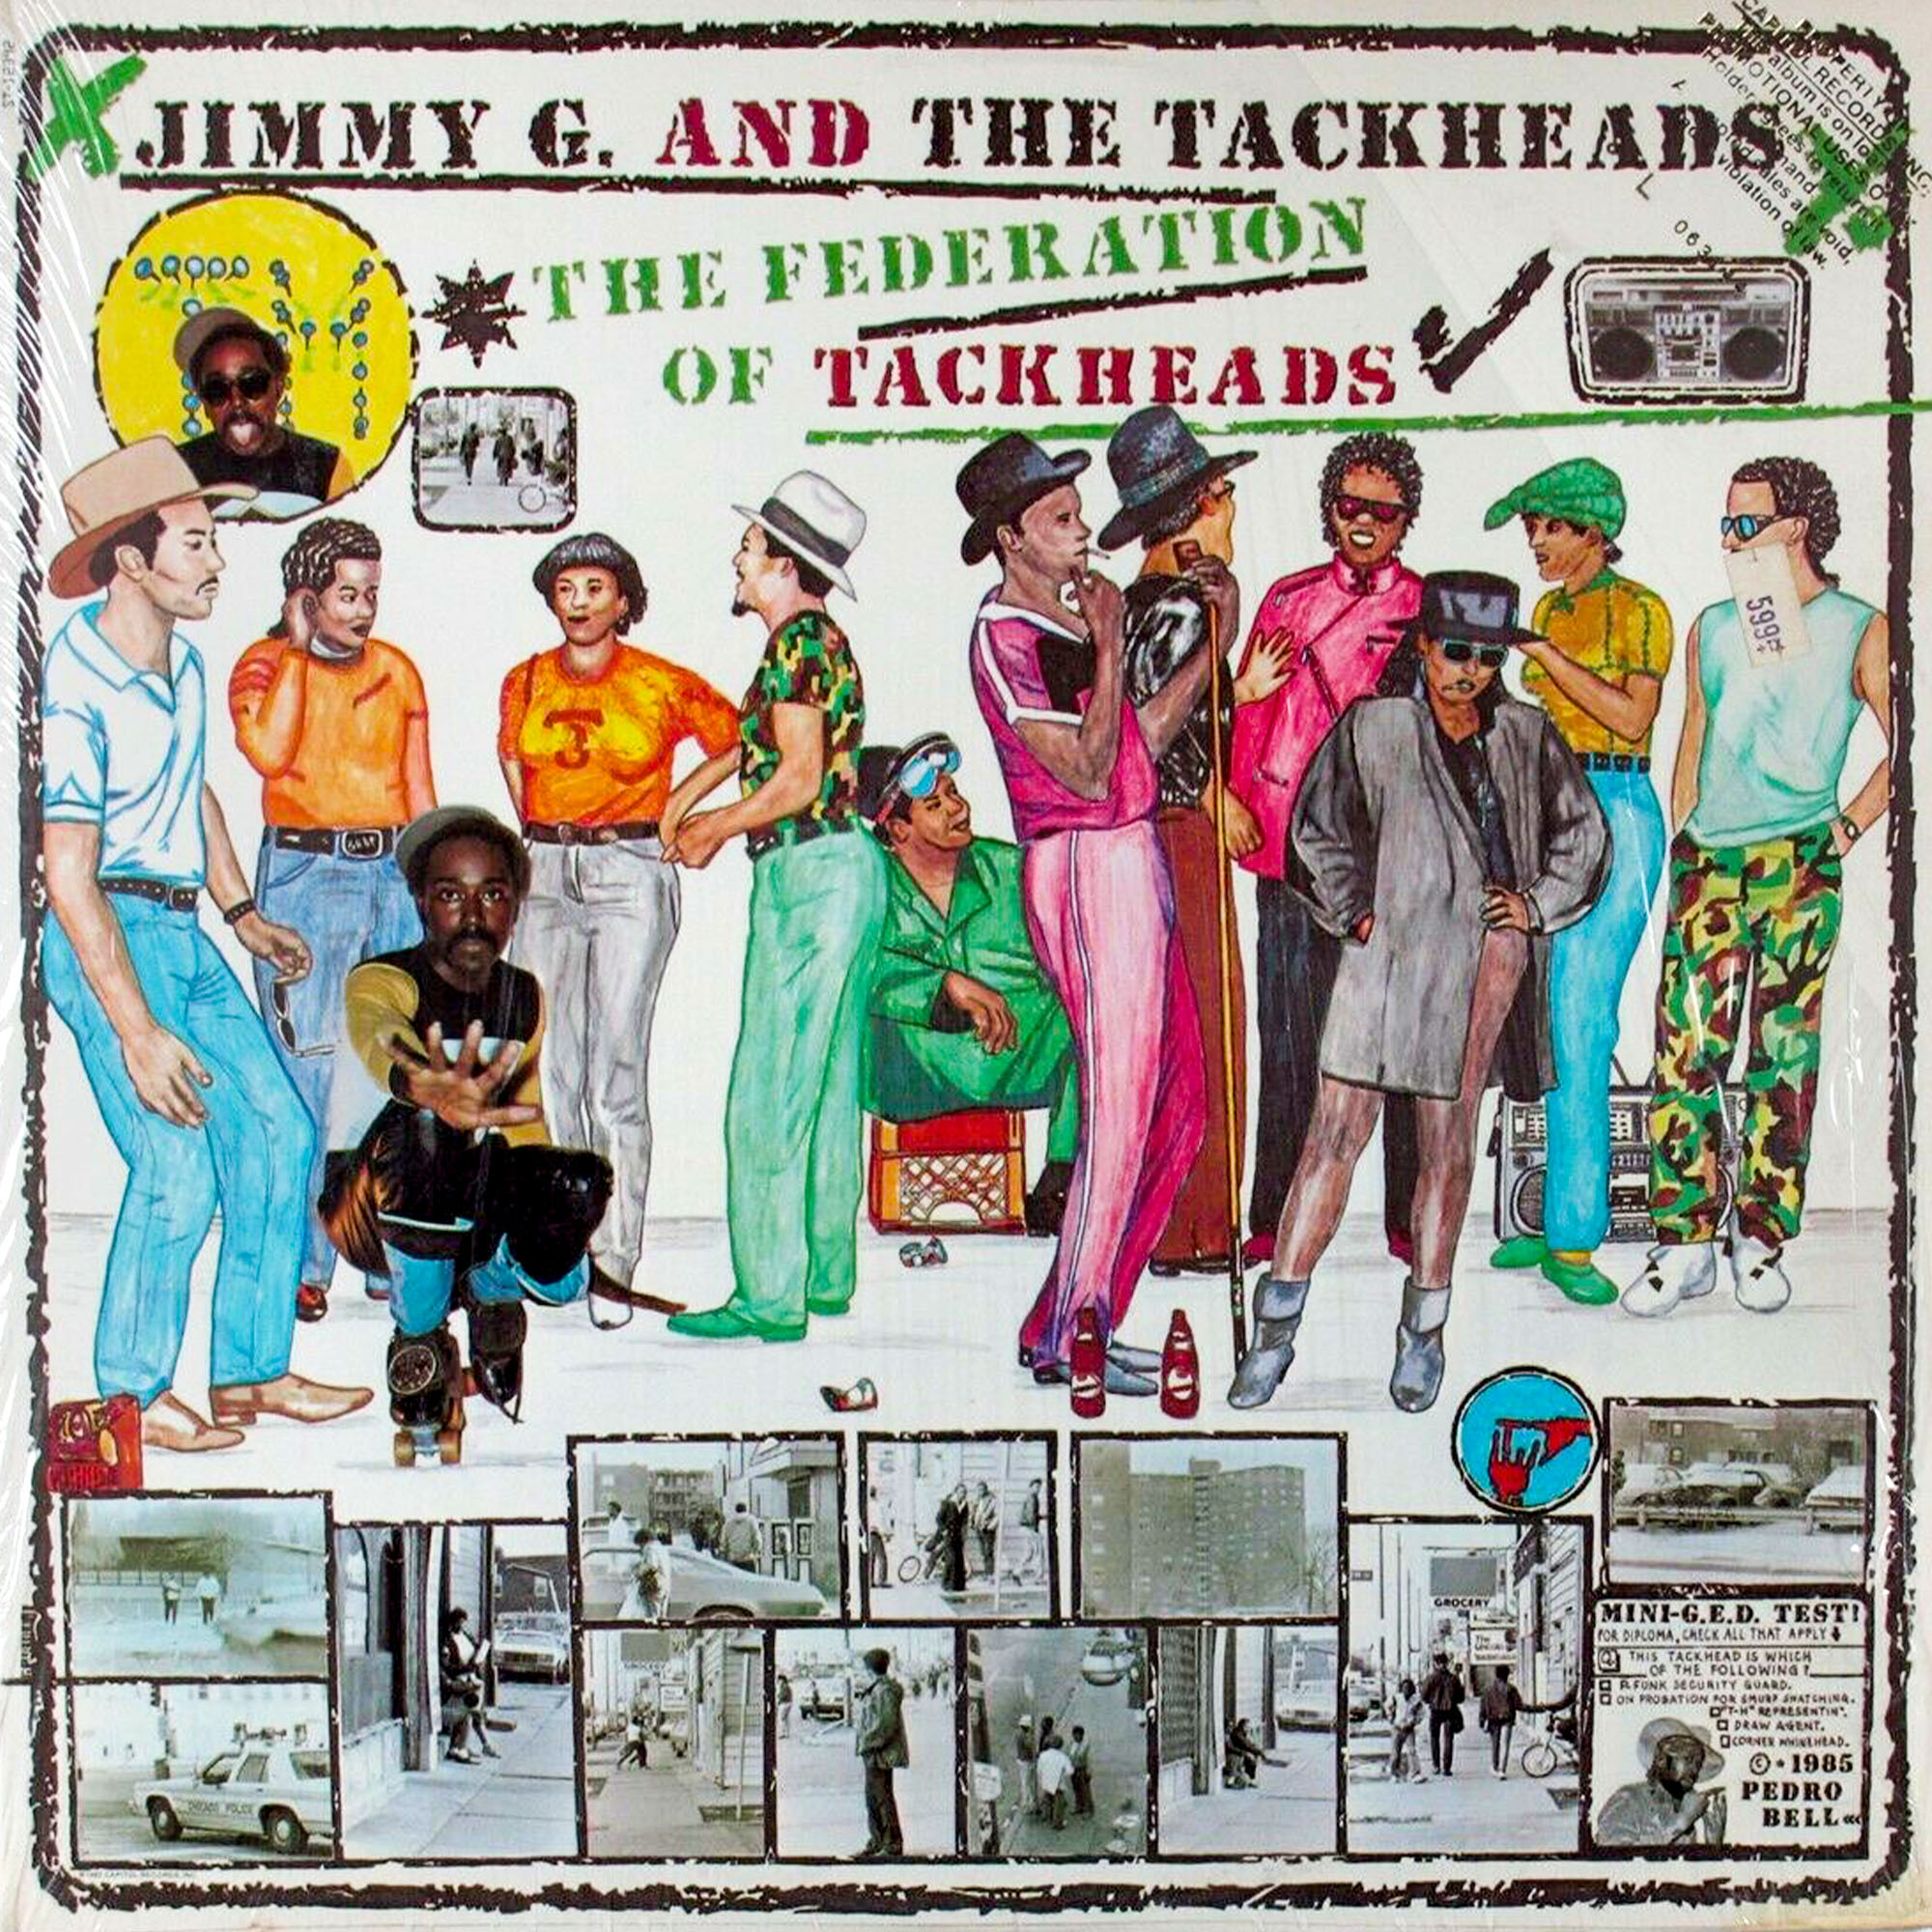 Jimmy G. and the Tackheads <i>The Federation of Tackheads</i>